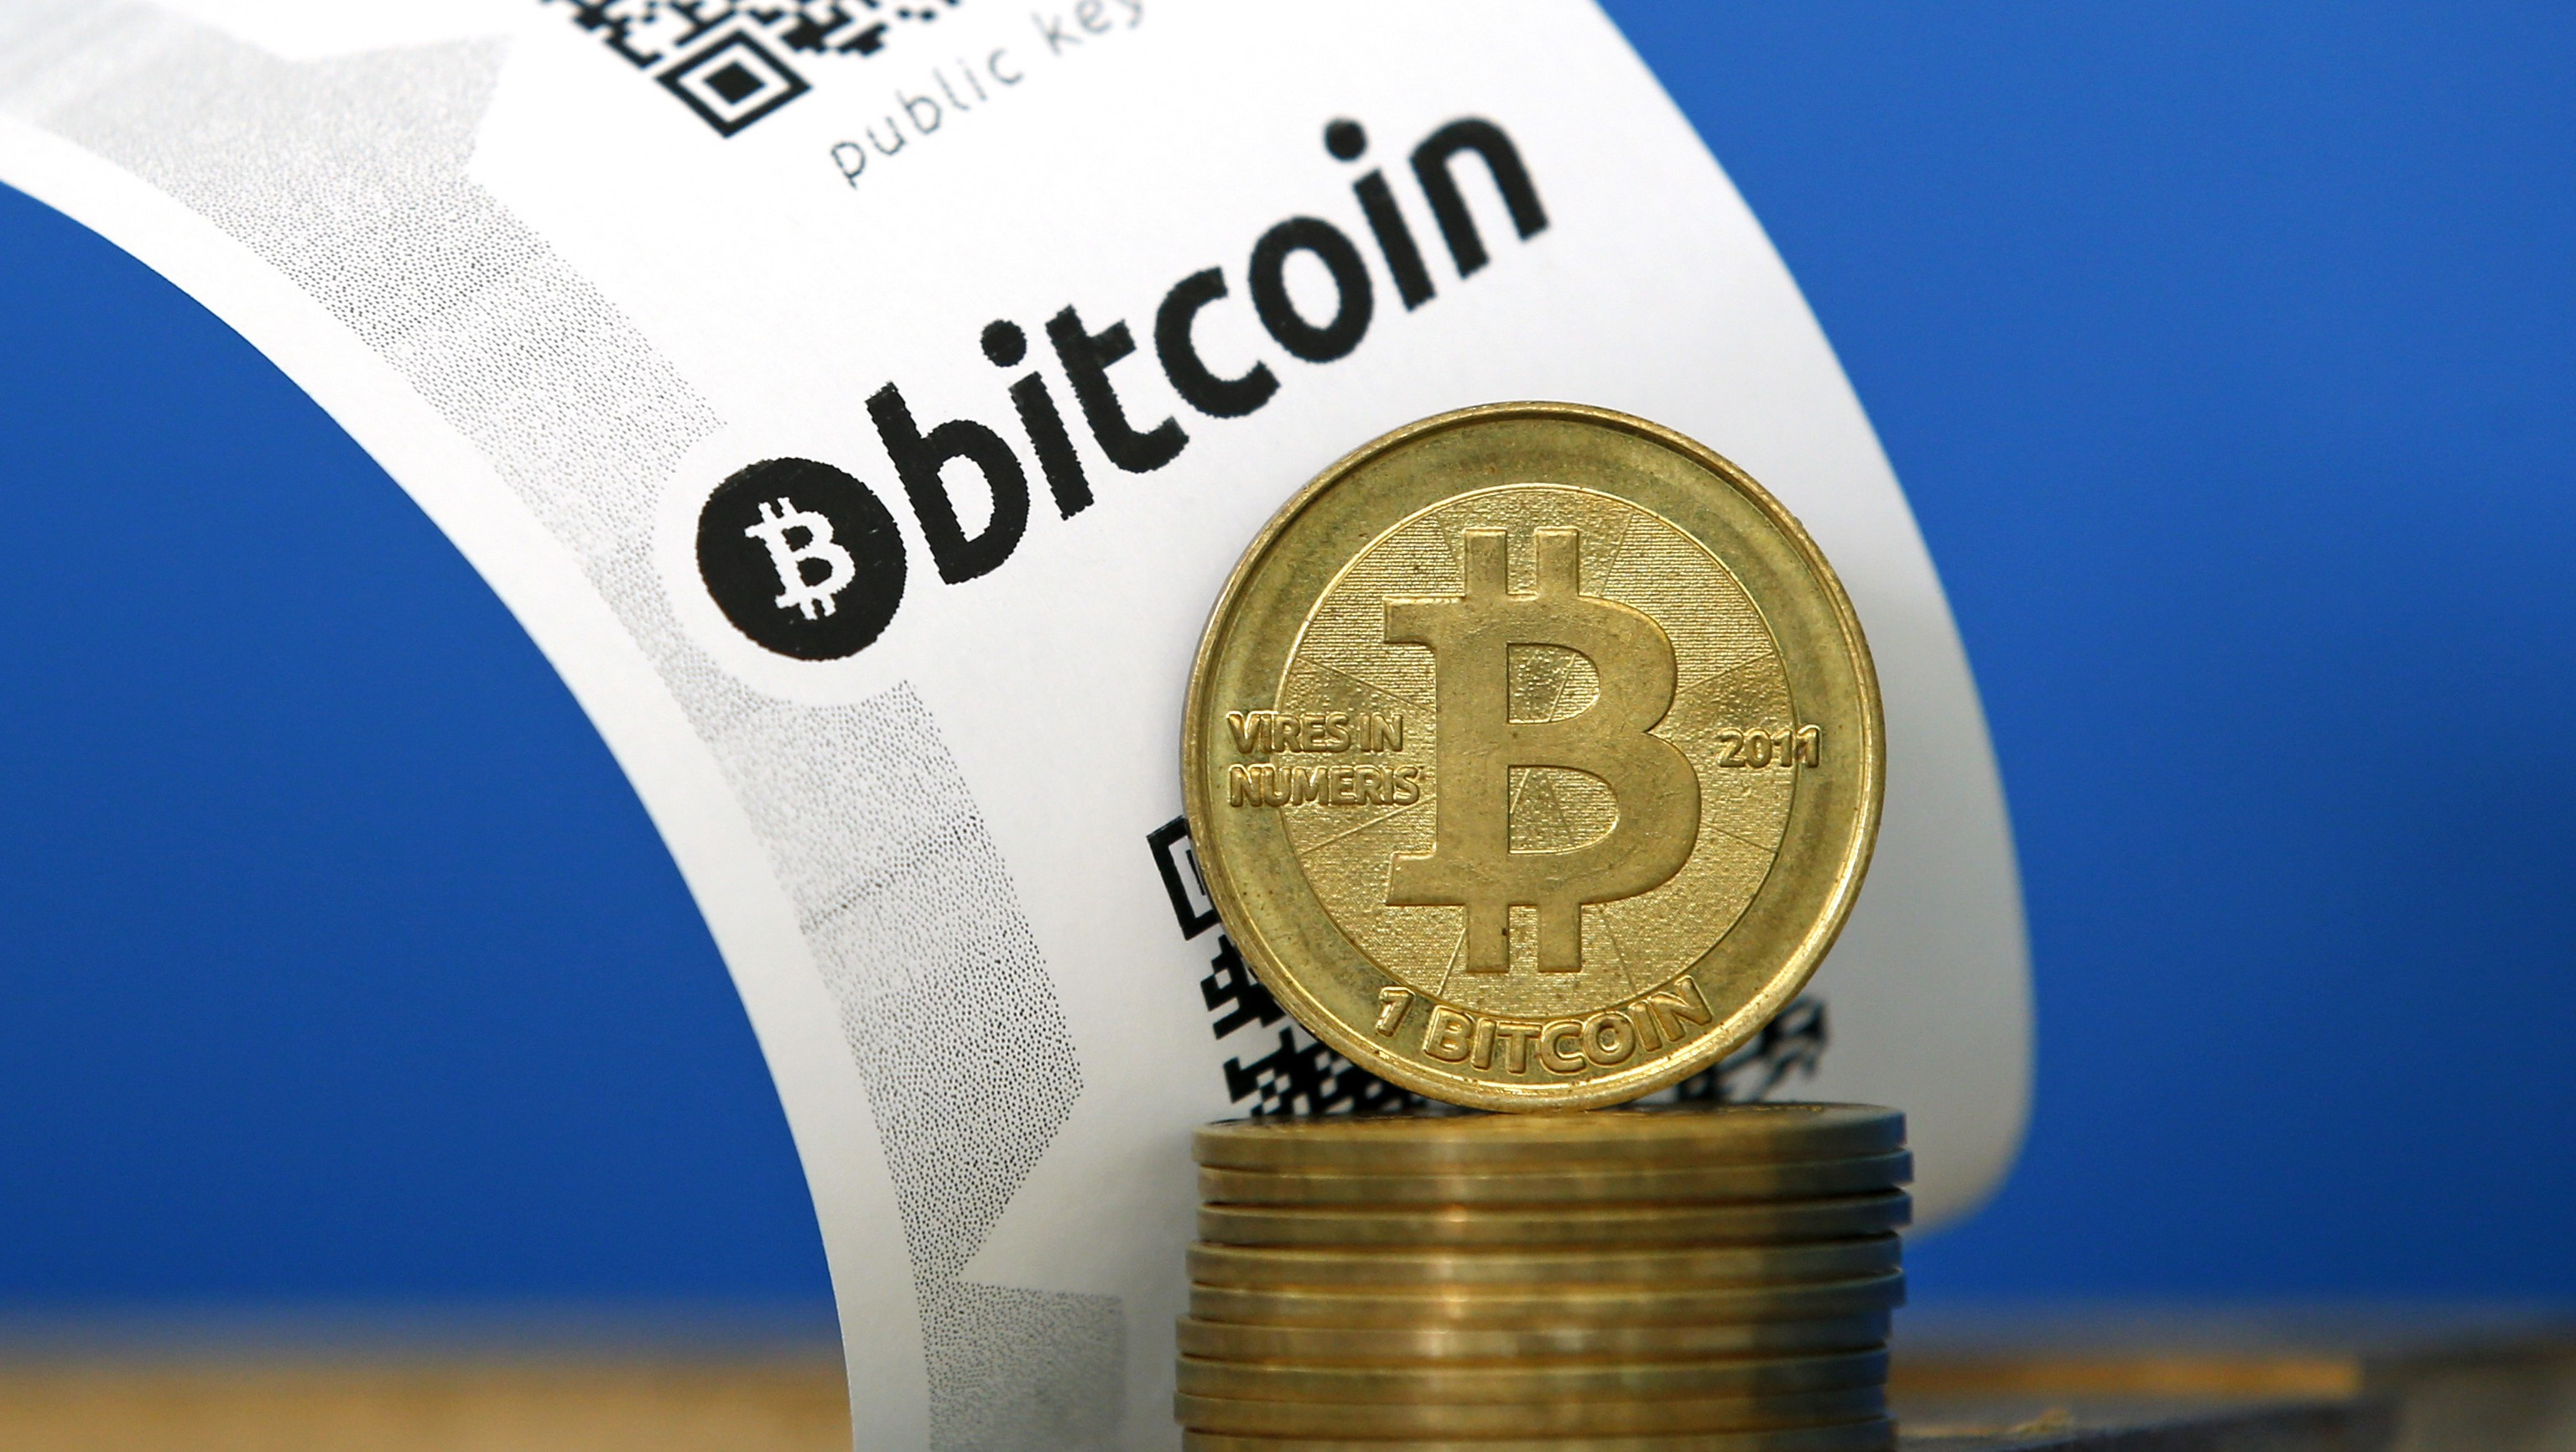 A Bitcoin (virtual currency) paper wallet with QR codes and coins are seen in an illustration picture taken at La Maison du Bitcoin in Paris July 11, 2014. French police dismantled an illegal Bitcoin exchange and seized 388 virtual currency units worth some 200,000 euros ($272,800) in the first such operation in Europe a public prosecutor said on Monday.   REUTERS/Benoit Tessier (FRANCE - Tags: BUSINESS) - RTR3Y7LN